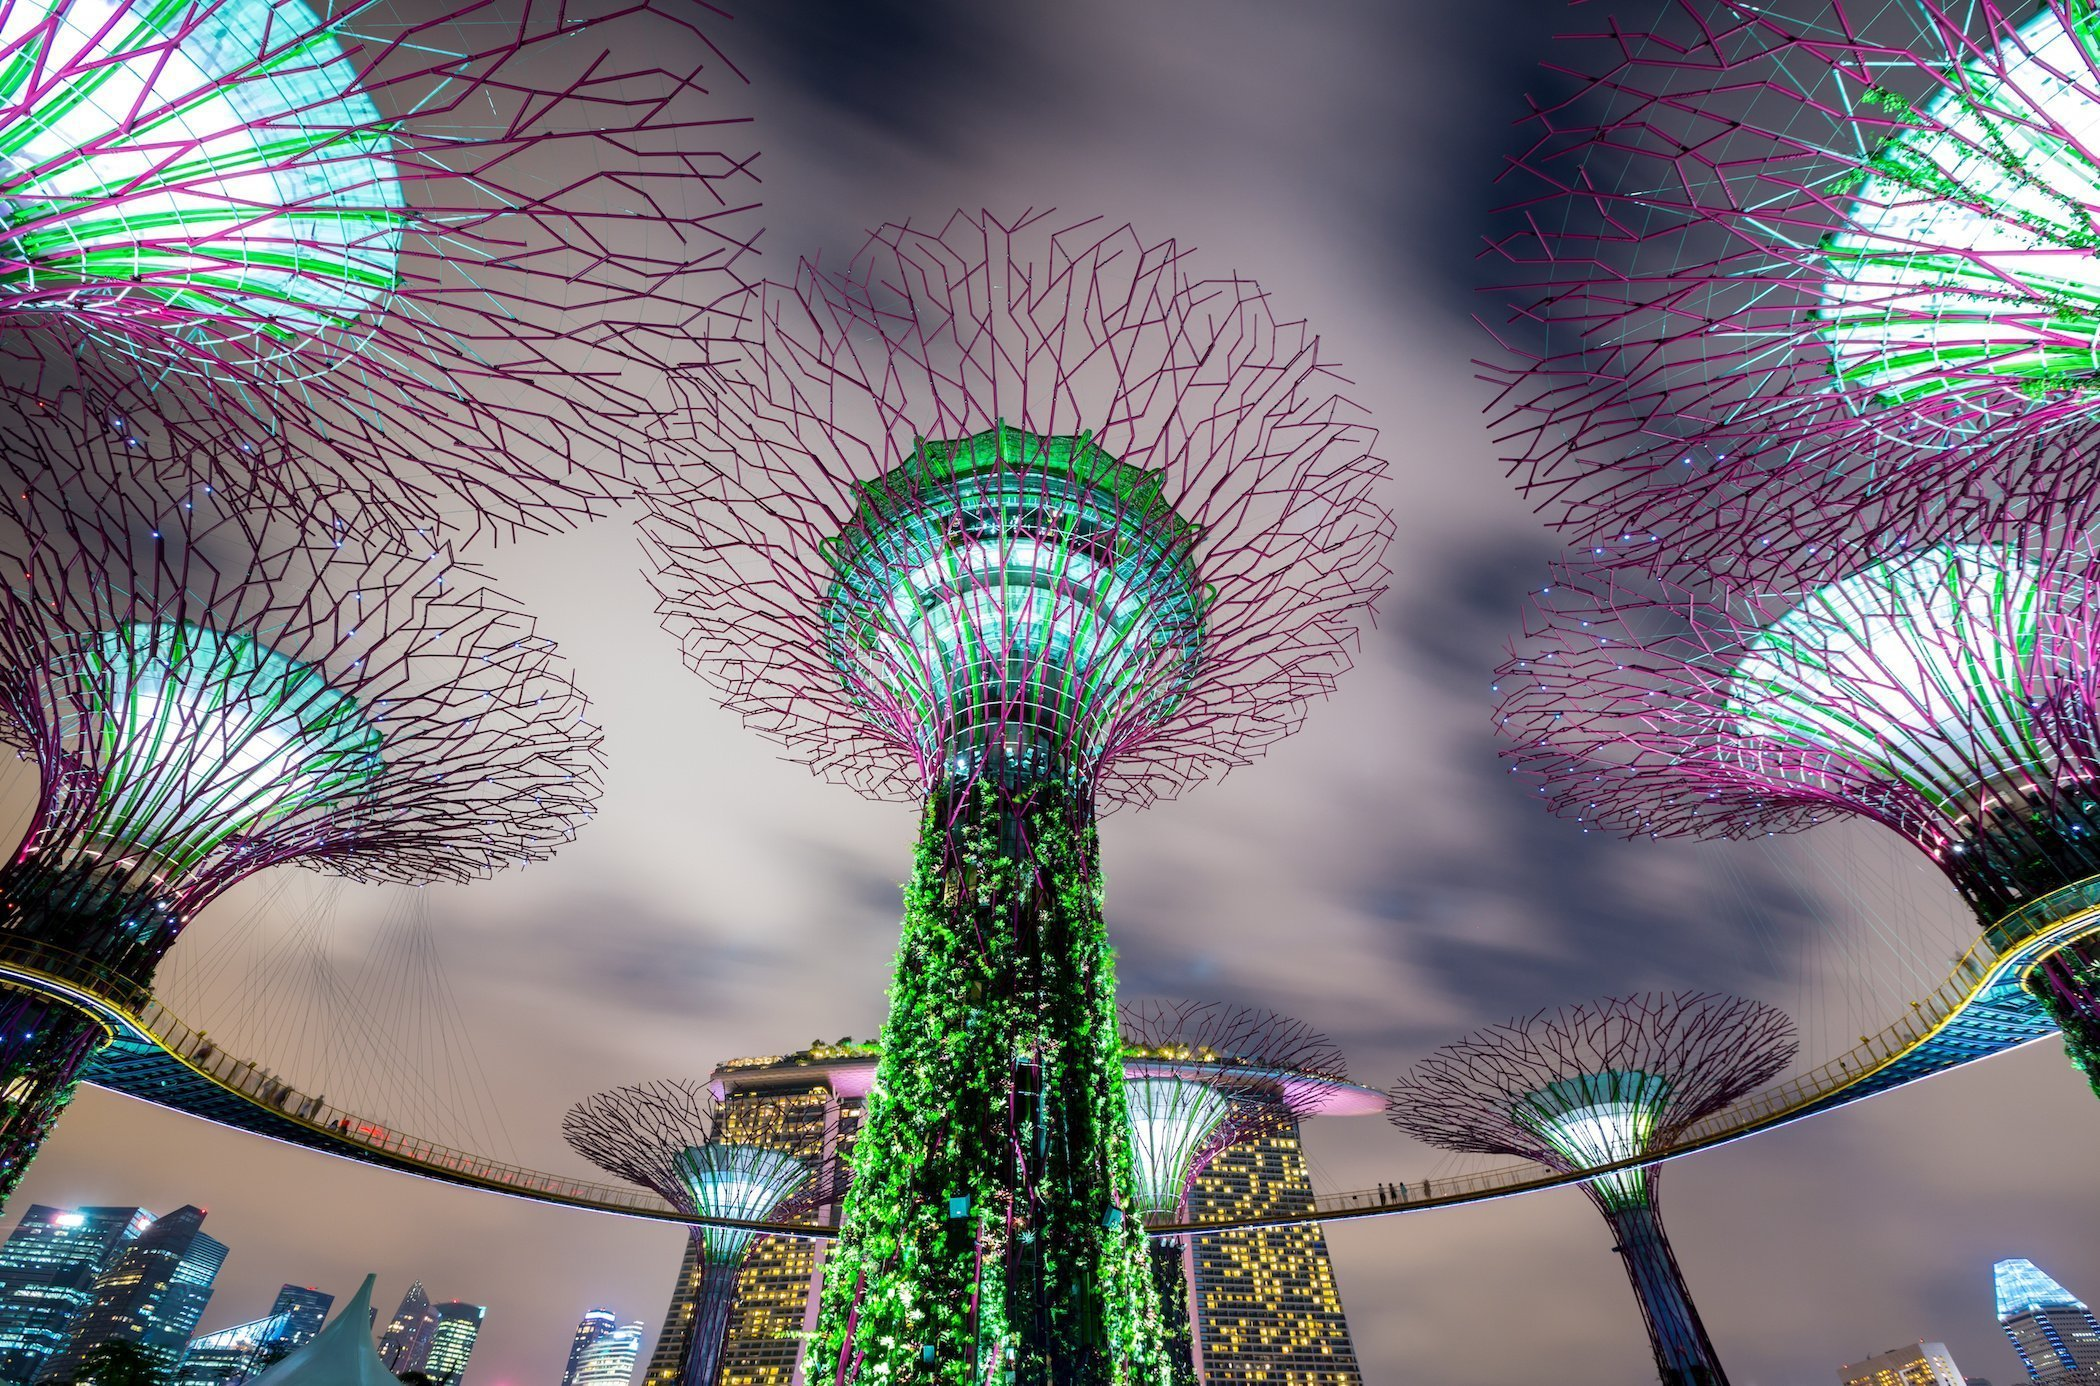 Night scenery of the artificial trees at the Singapore' s Garden By the Bay